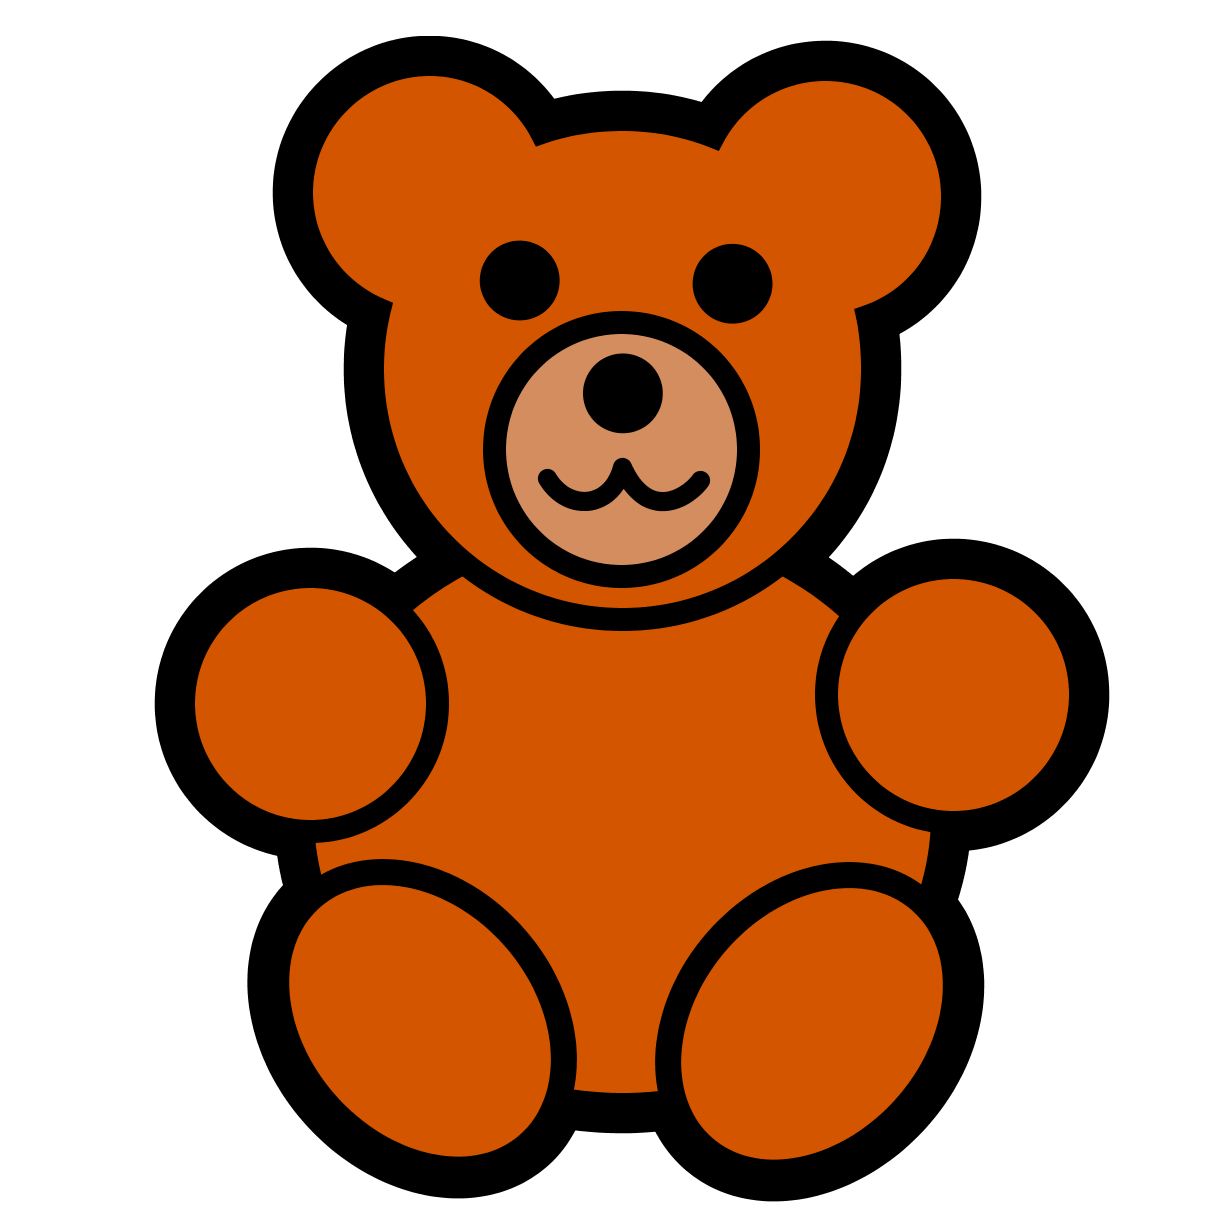 svg free Teddy bear large images. Yoyo clipart clip art